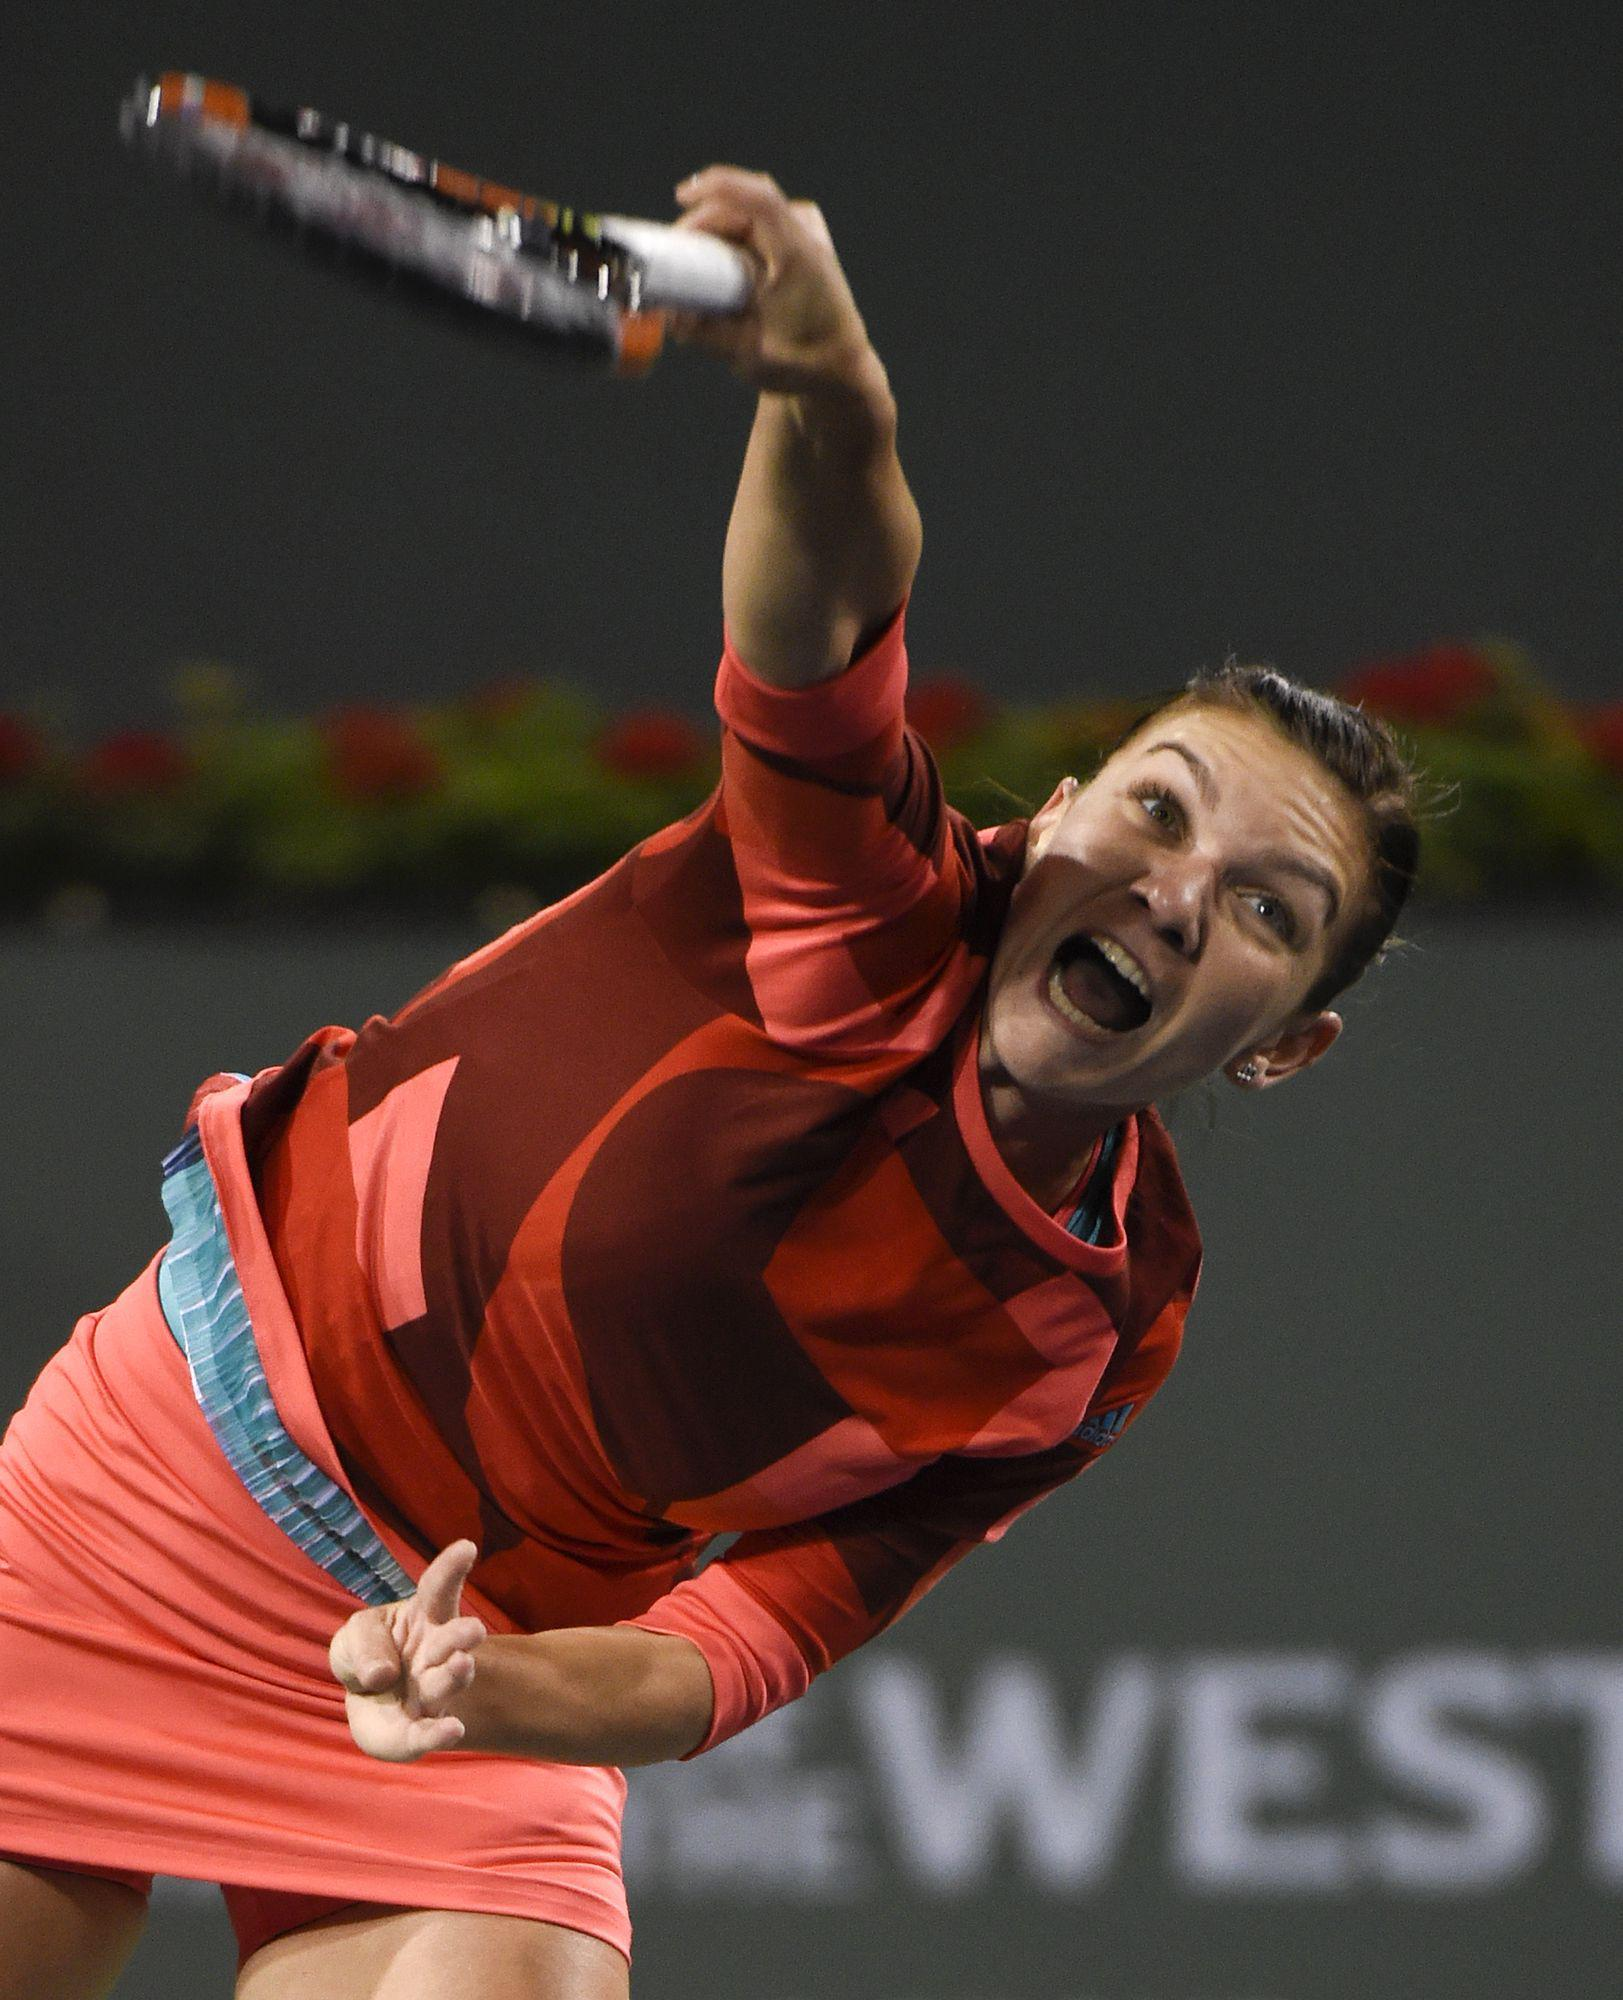 epa05207160 Simona Halep of Romania in action against the Vania King of the USA during their second round match at the BNP Paribas Open in Indian Wells, California, USA, 11 March 2016.  EPA/RAY ACEVEDO